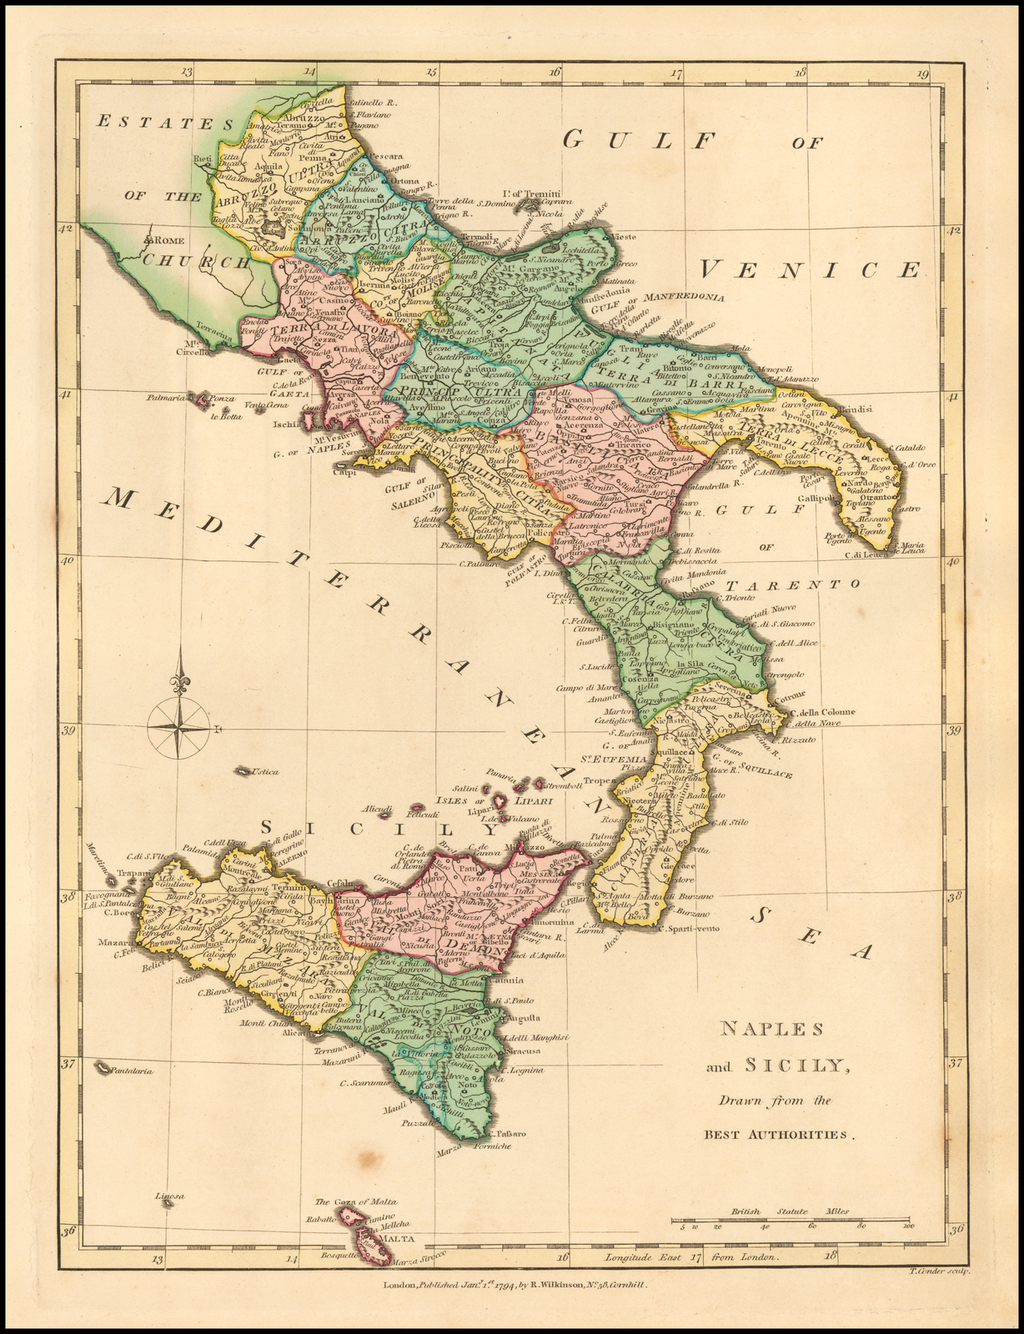 Naples and Sicily drawn from the Best Authorities By Robert Wilkinson